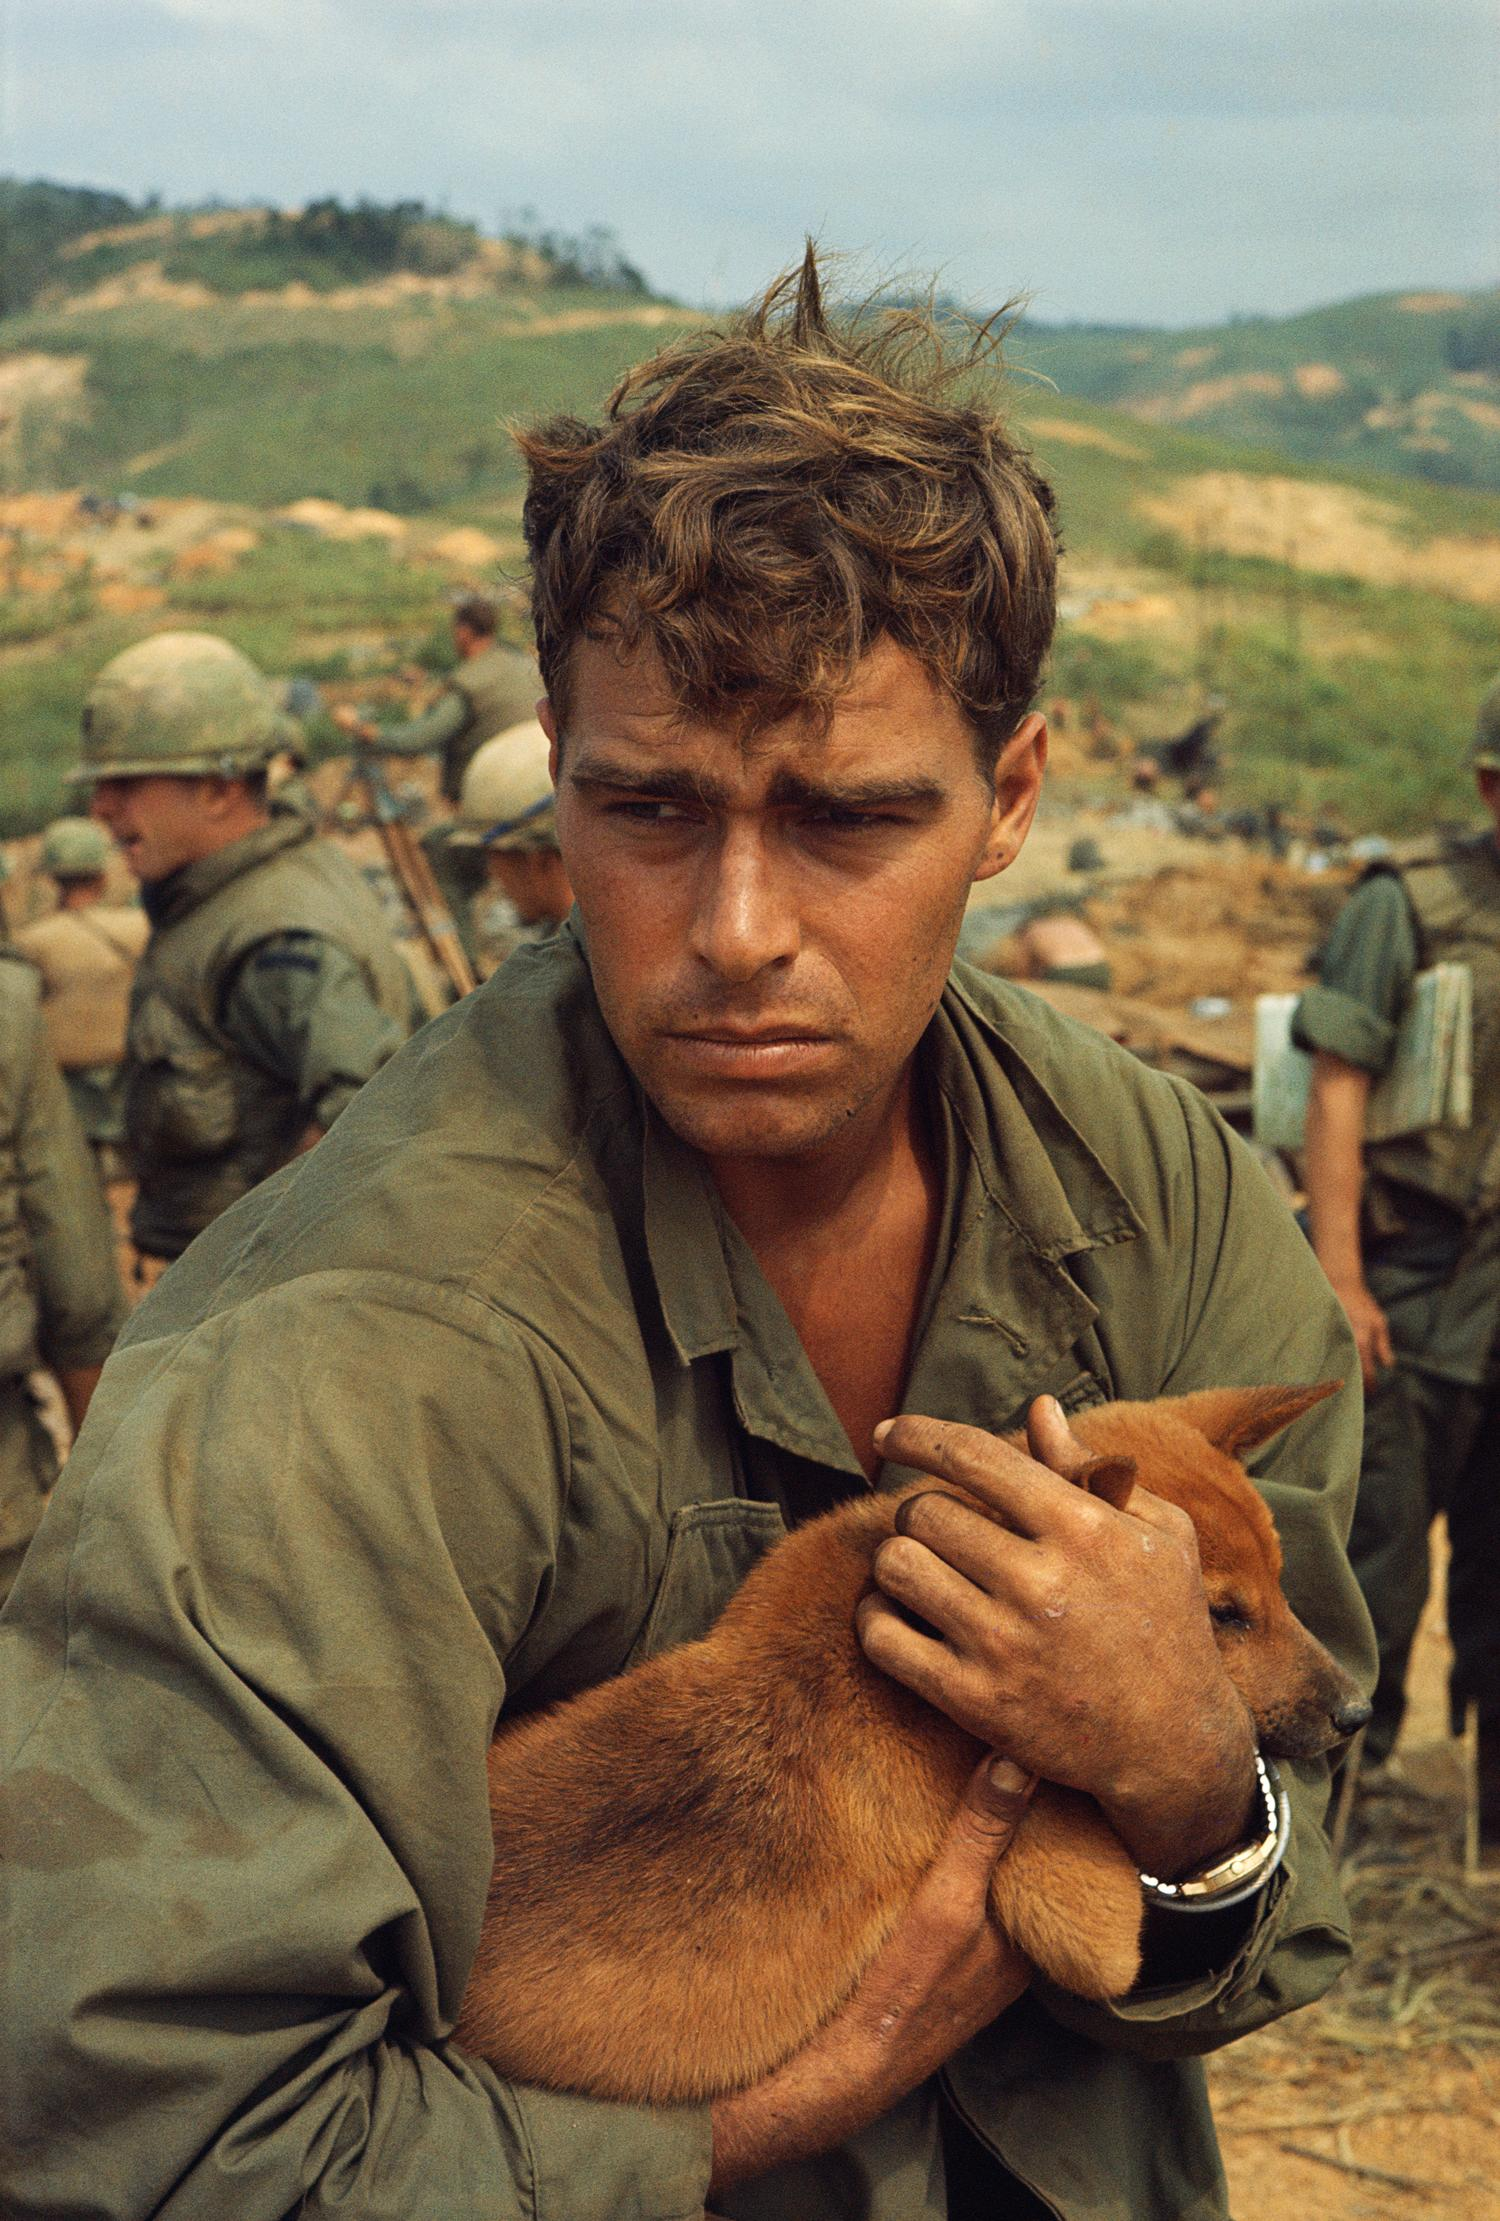 <p>U.S. Marine in Khe Sanh, Operation Pegasus, April 1968. (Photograph by Larry Burrows) </p>